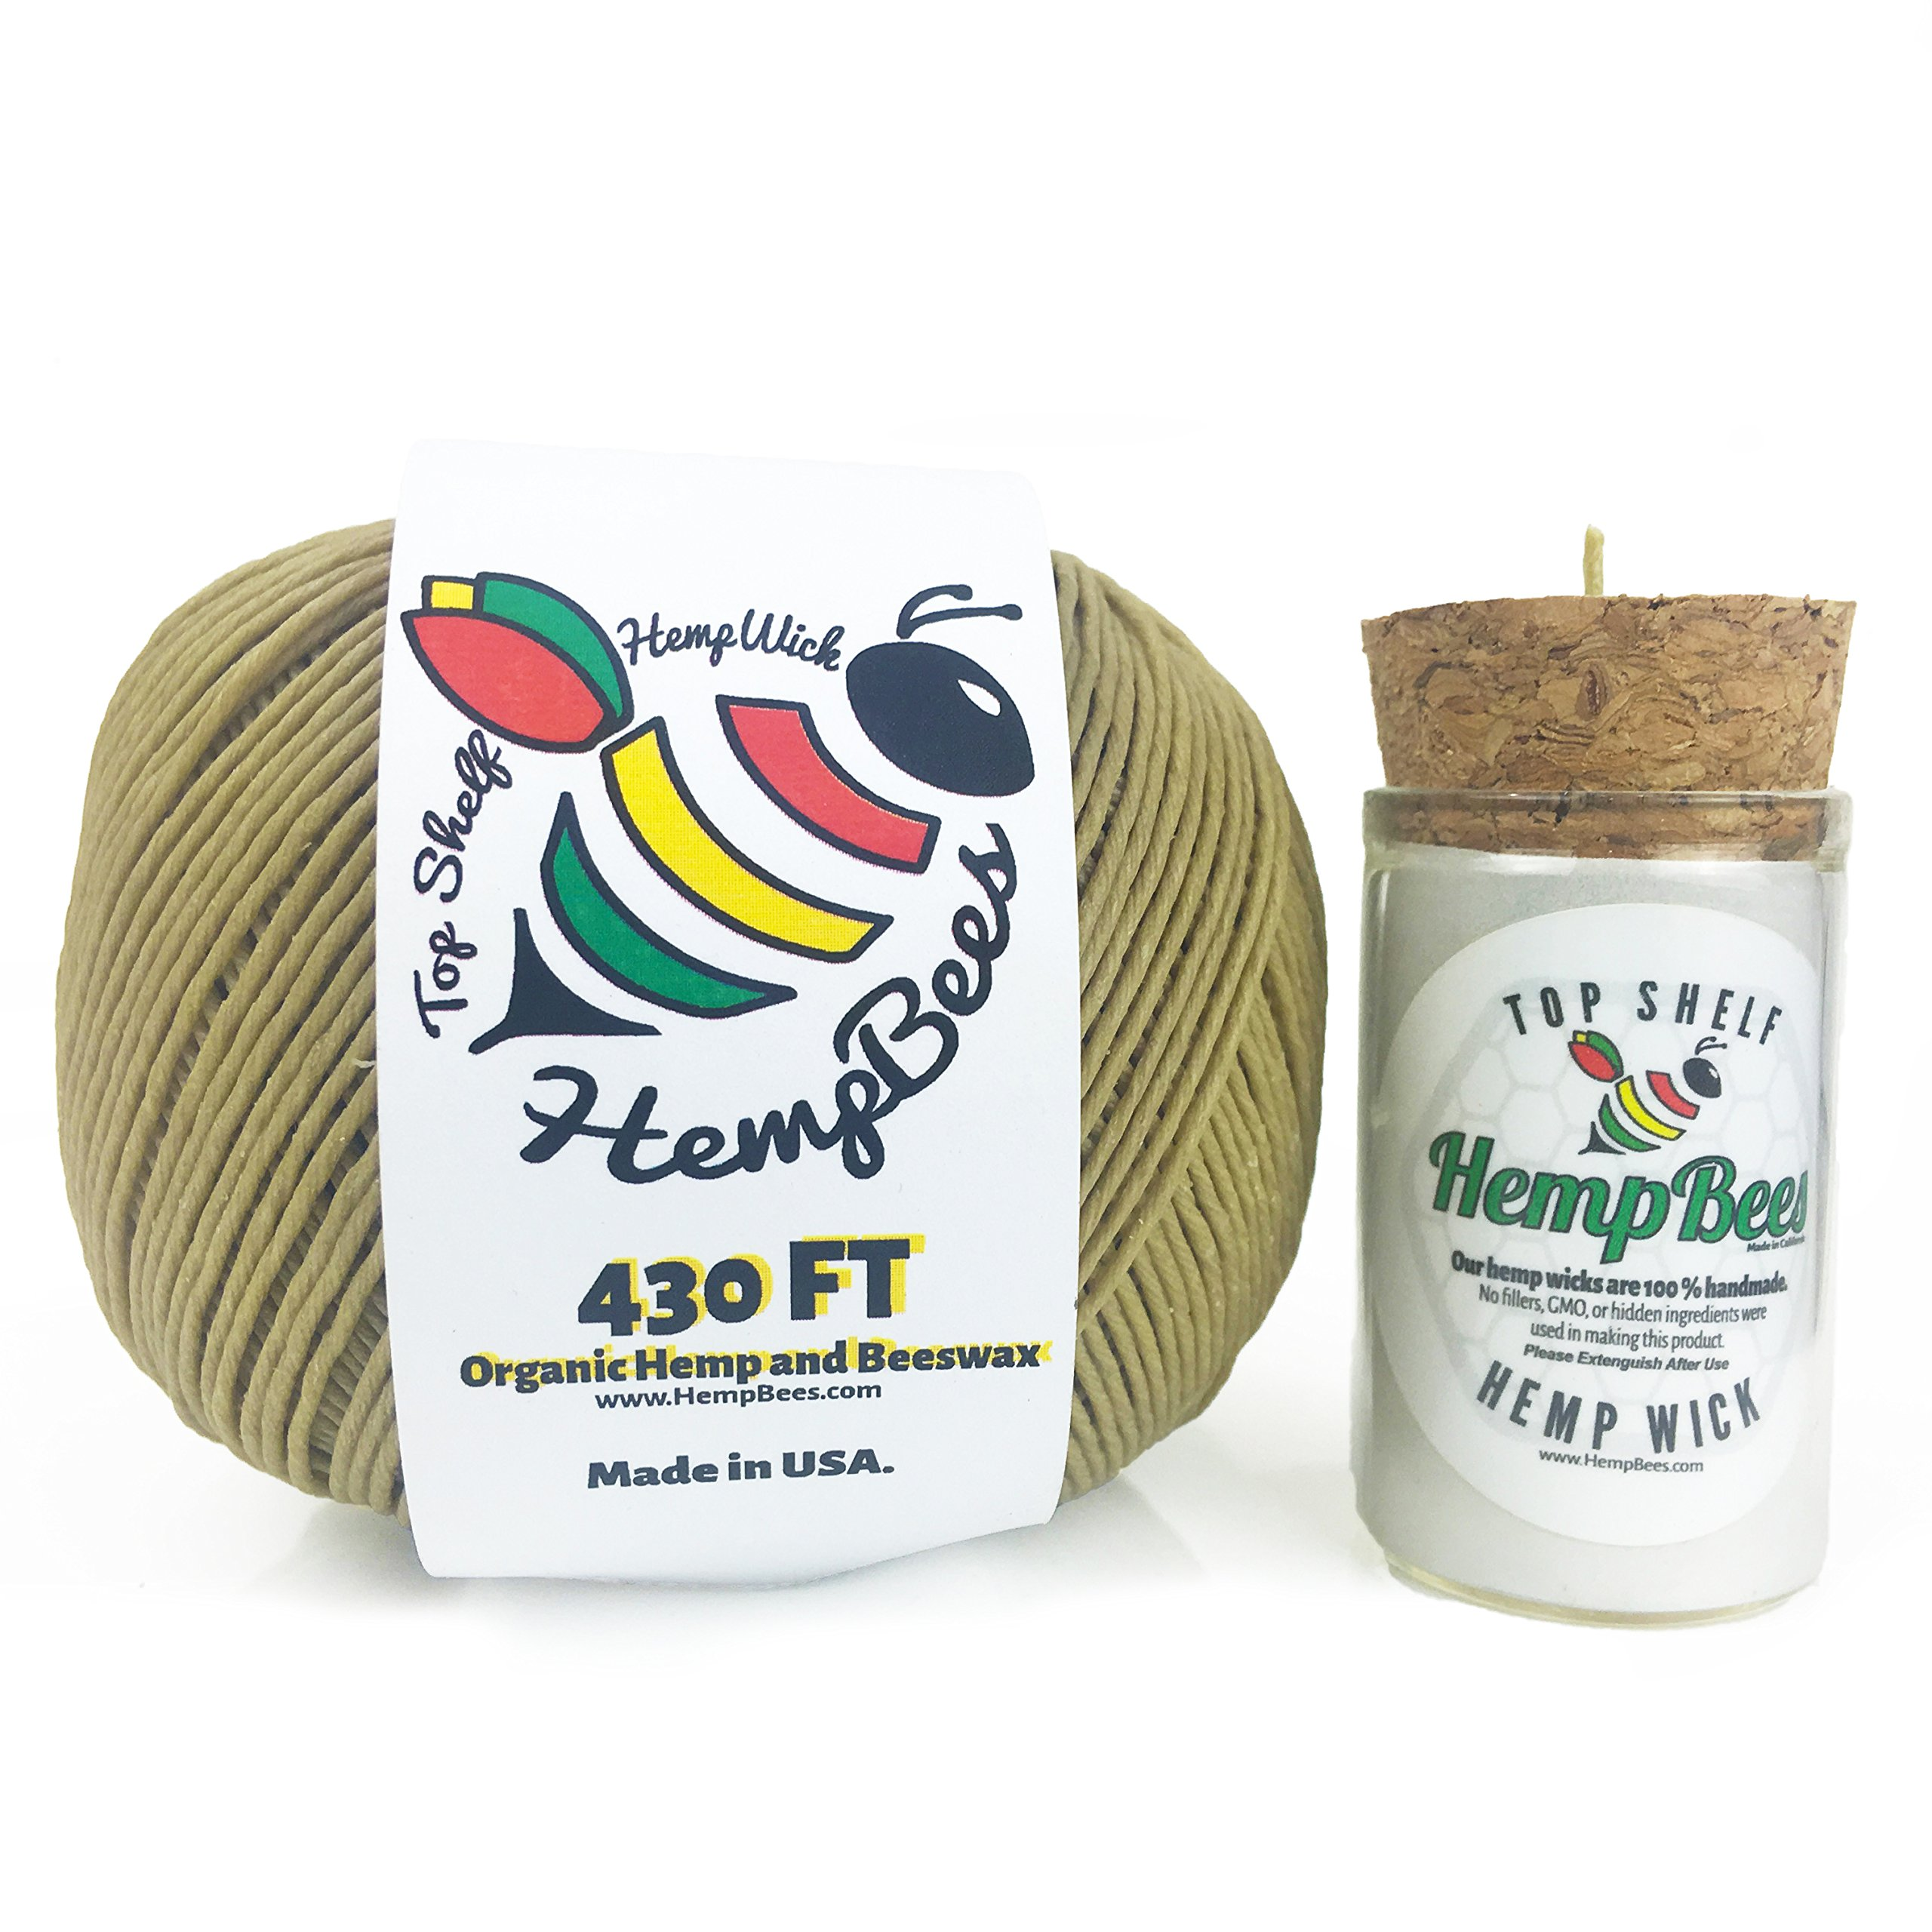 430 Ft Organic Hemp Wick Spool Roll Waxed & Coated w/ Natural Beeswax - SLOW BURN & LONG LASTING - Includes Glass Dispenser 20 - 30 ft Holder is Easy to Use & Pass. Hempwick STAYS FRESH & TANGLE-FREE